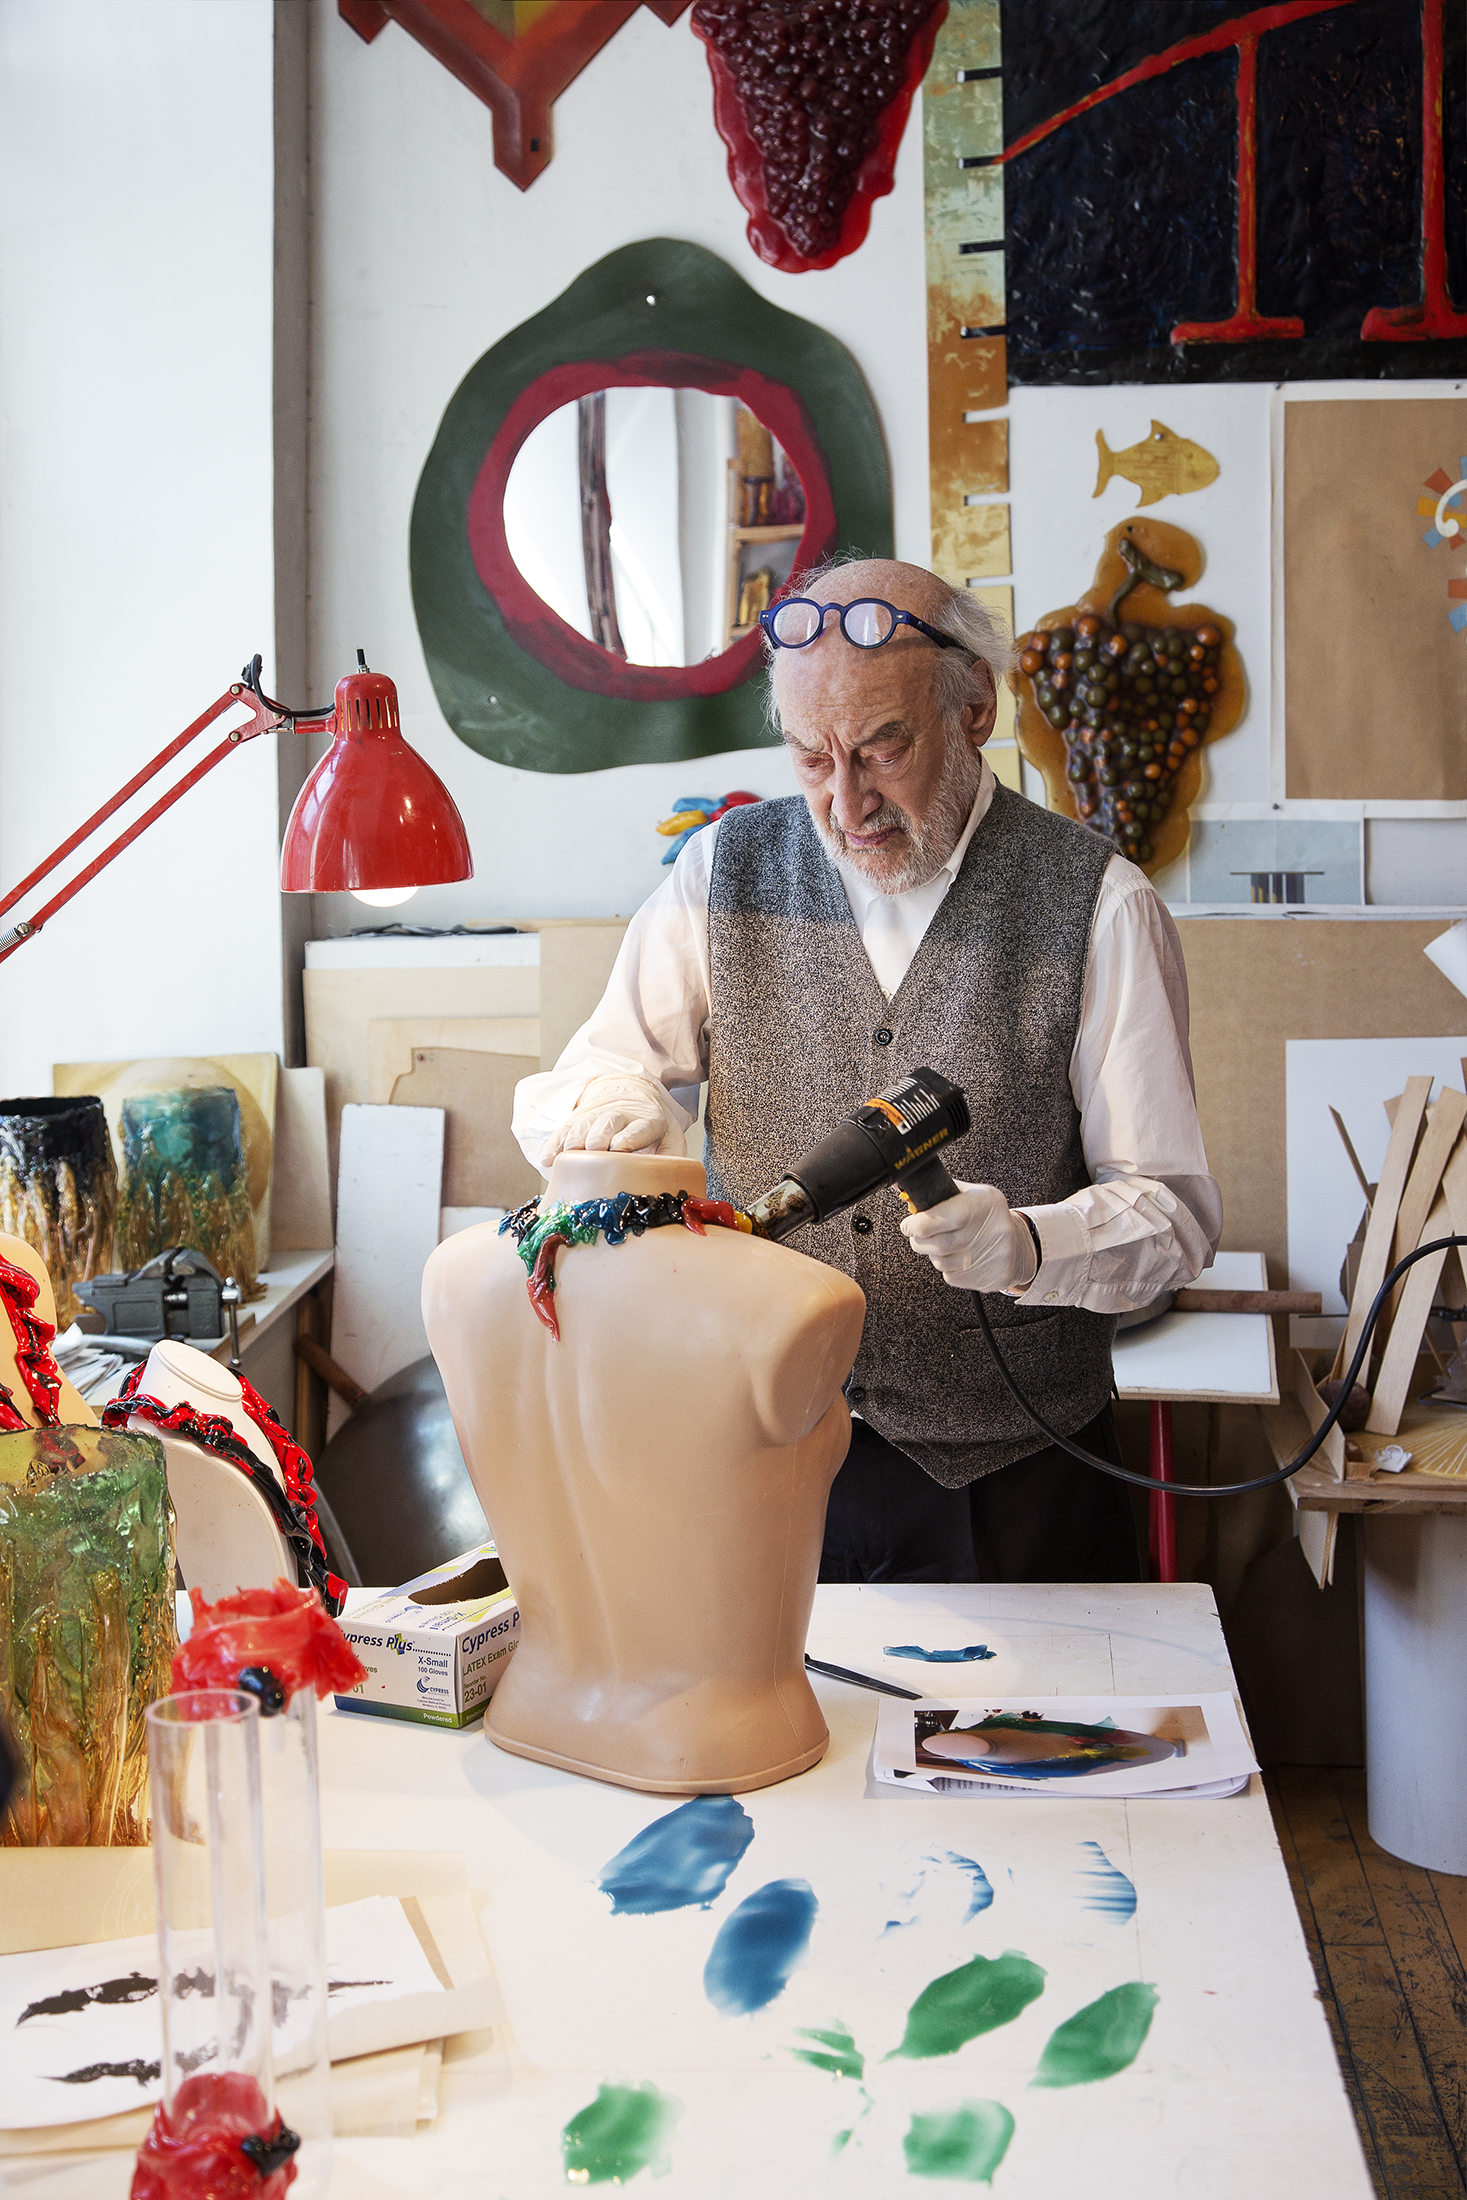 Pesce working in his studio. (Photo: Ogata/Surface)